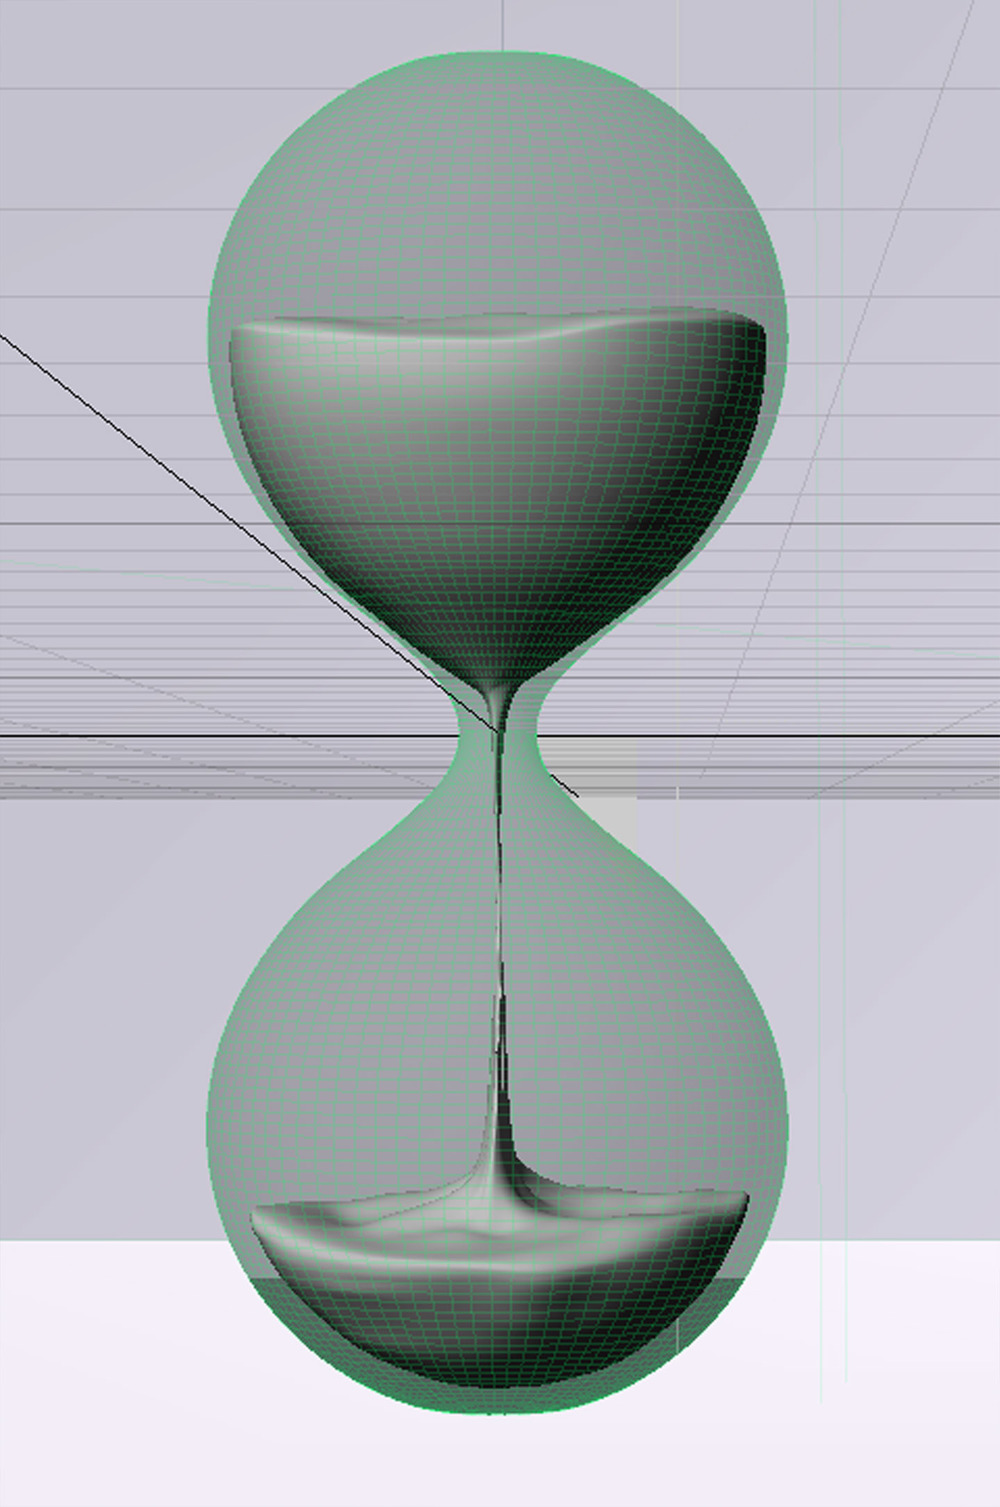 I built a model, using the shape of the stock hourglass as a guide.